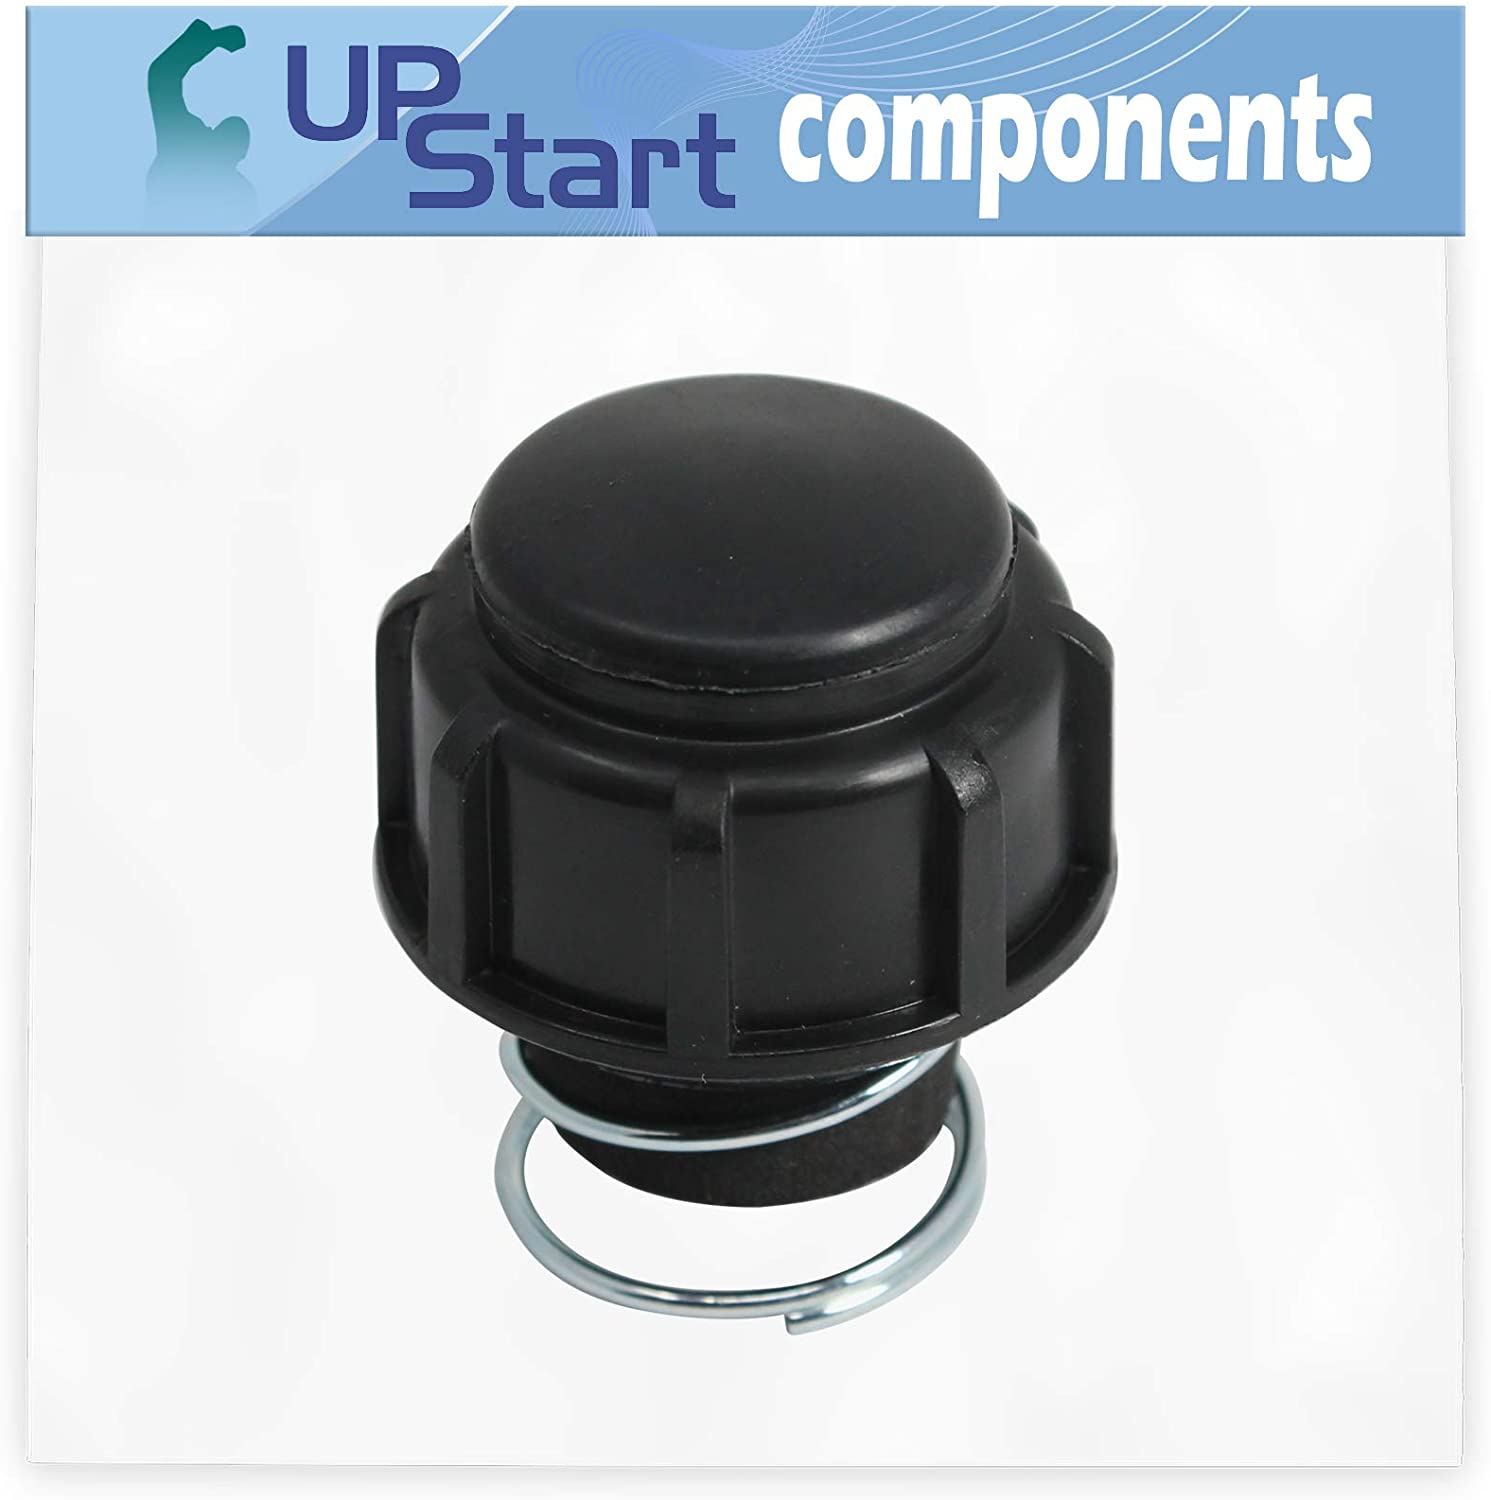 UpStart Components 791-181468B Bump Head Knob Assembly Replacement for Ryobi 725r (41DD725A034) Handheld Trimmer - Compatible with 181468 Bump Knob and Spring Assembly